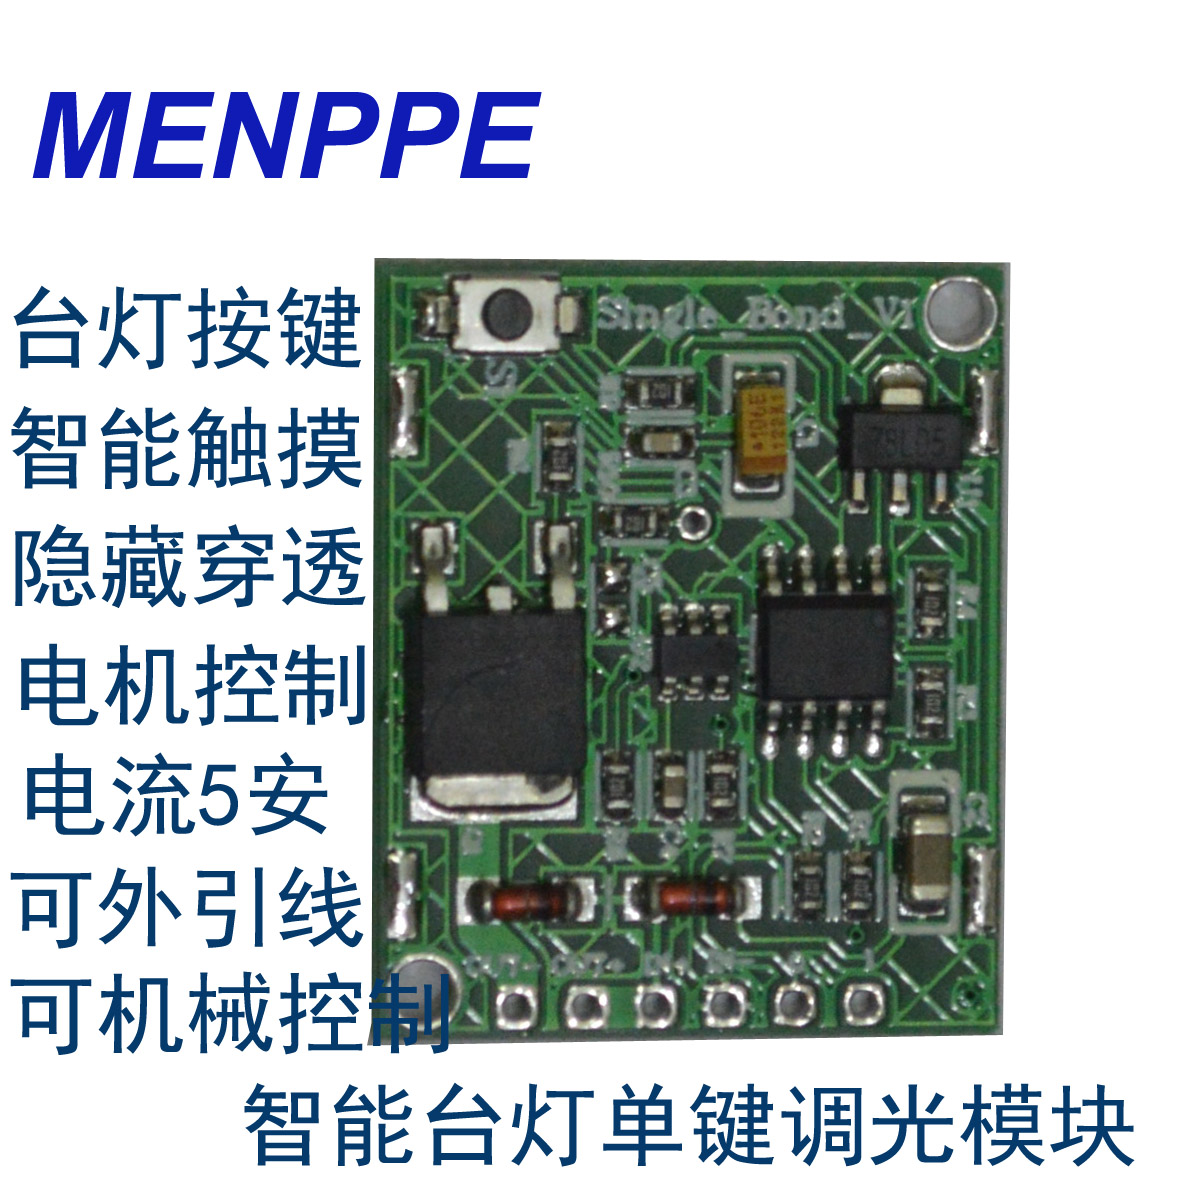 Usd 8 59 Led Lamp Touch Dimming Module Stepless Dimming Pwm Control Board Switch Module Capacitive Touch Button Wholesale From China Online Shopping Buy Asian Products Online From The Best Shoping